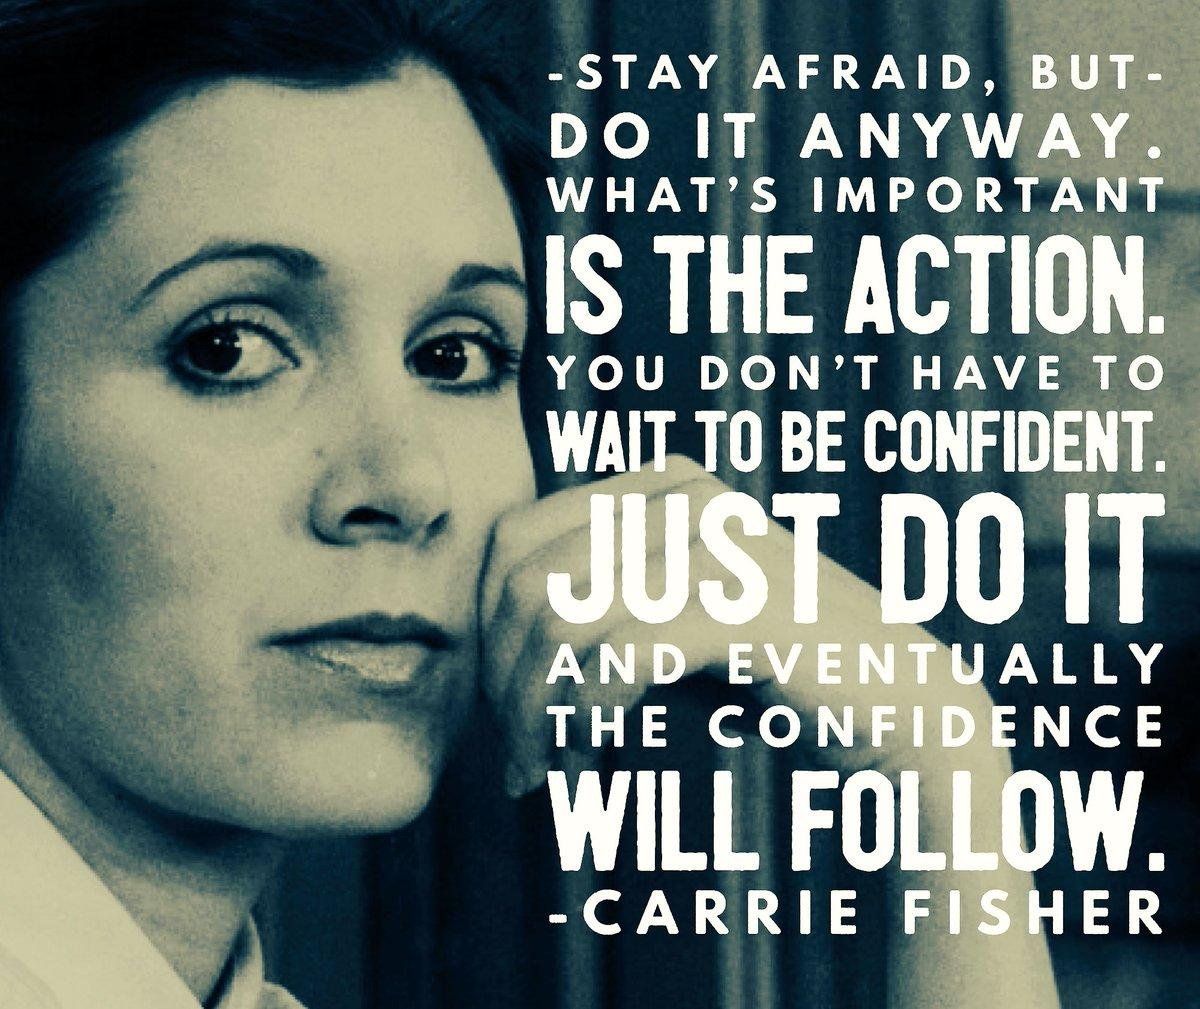 [image] Inspring advice from carrie fisher